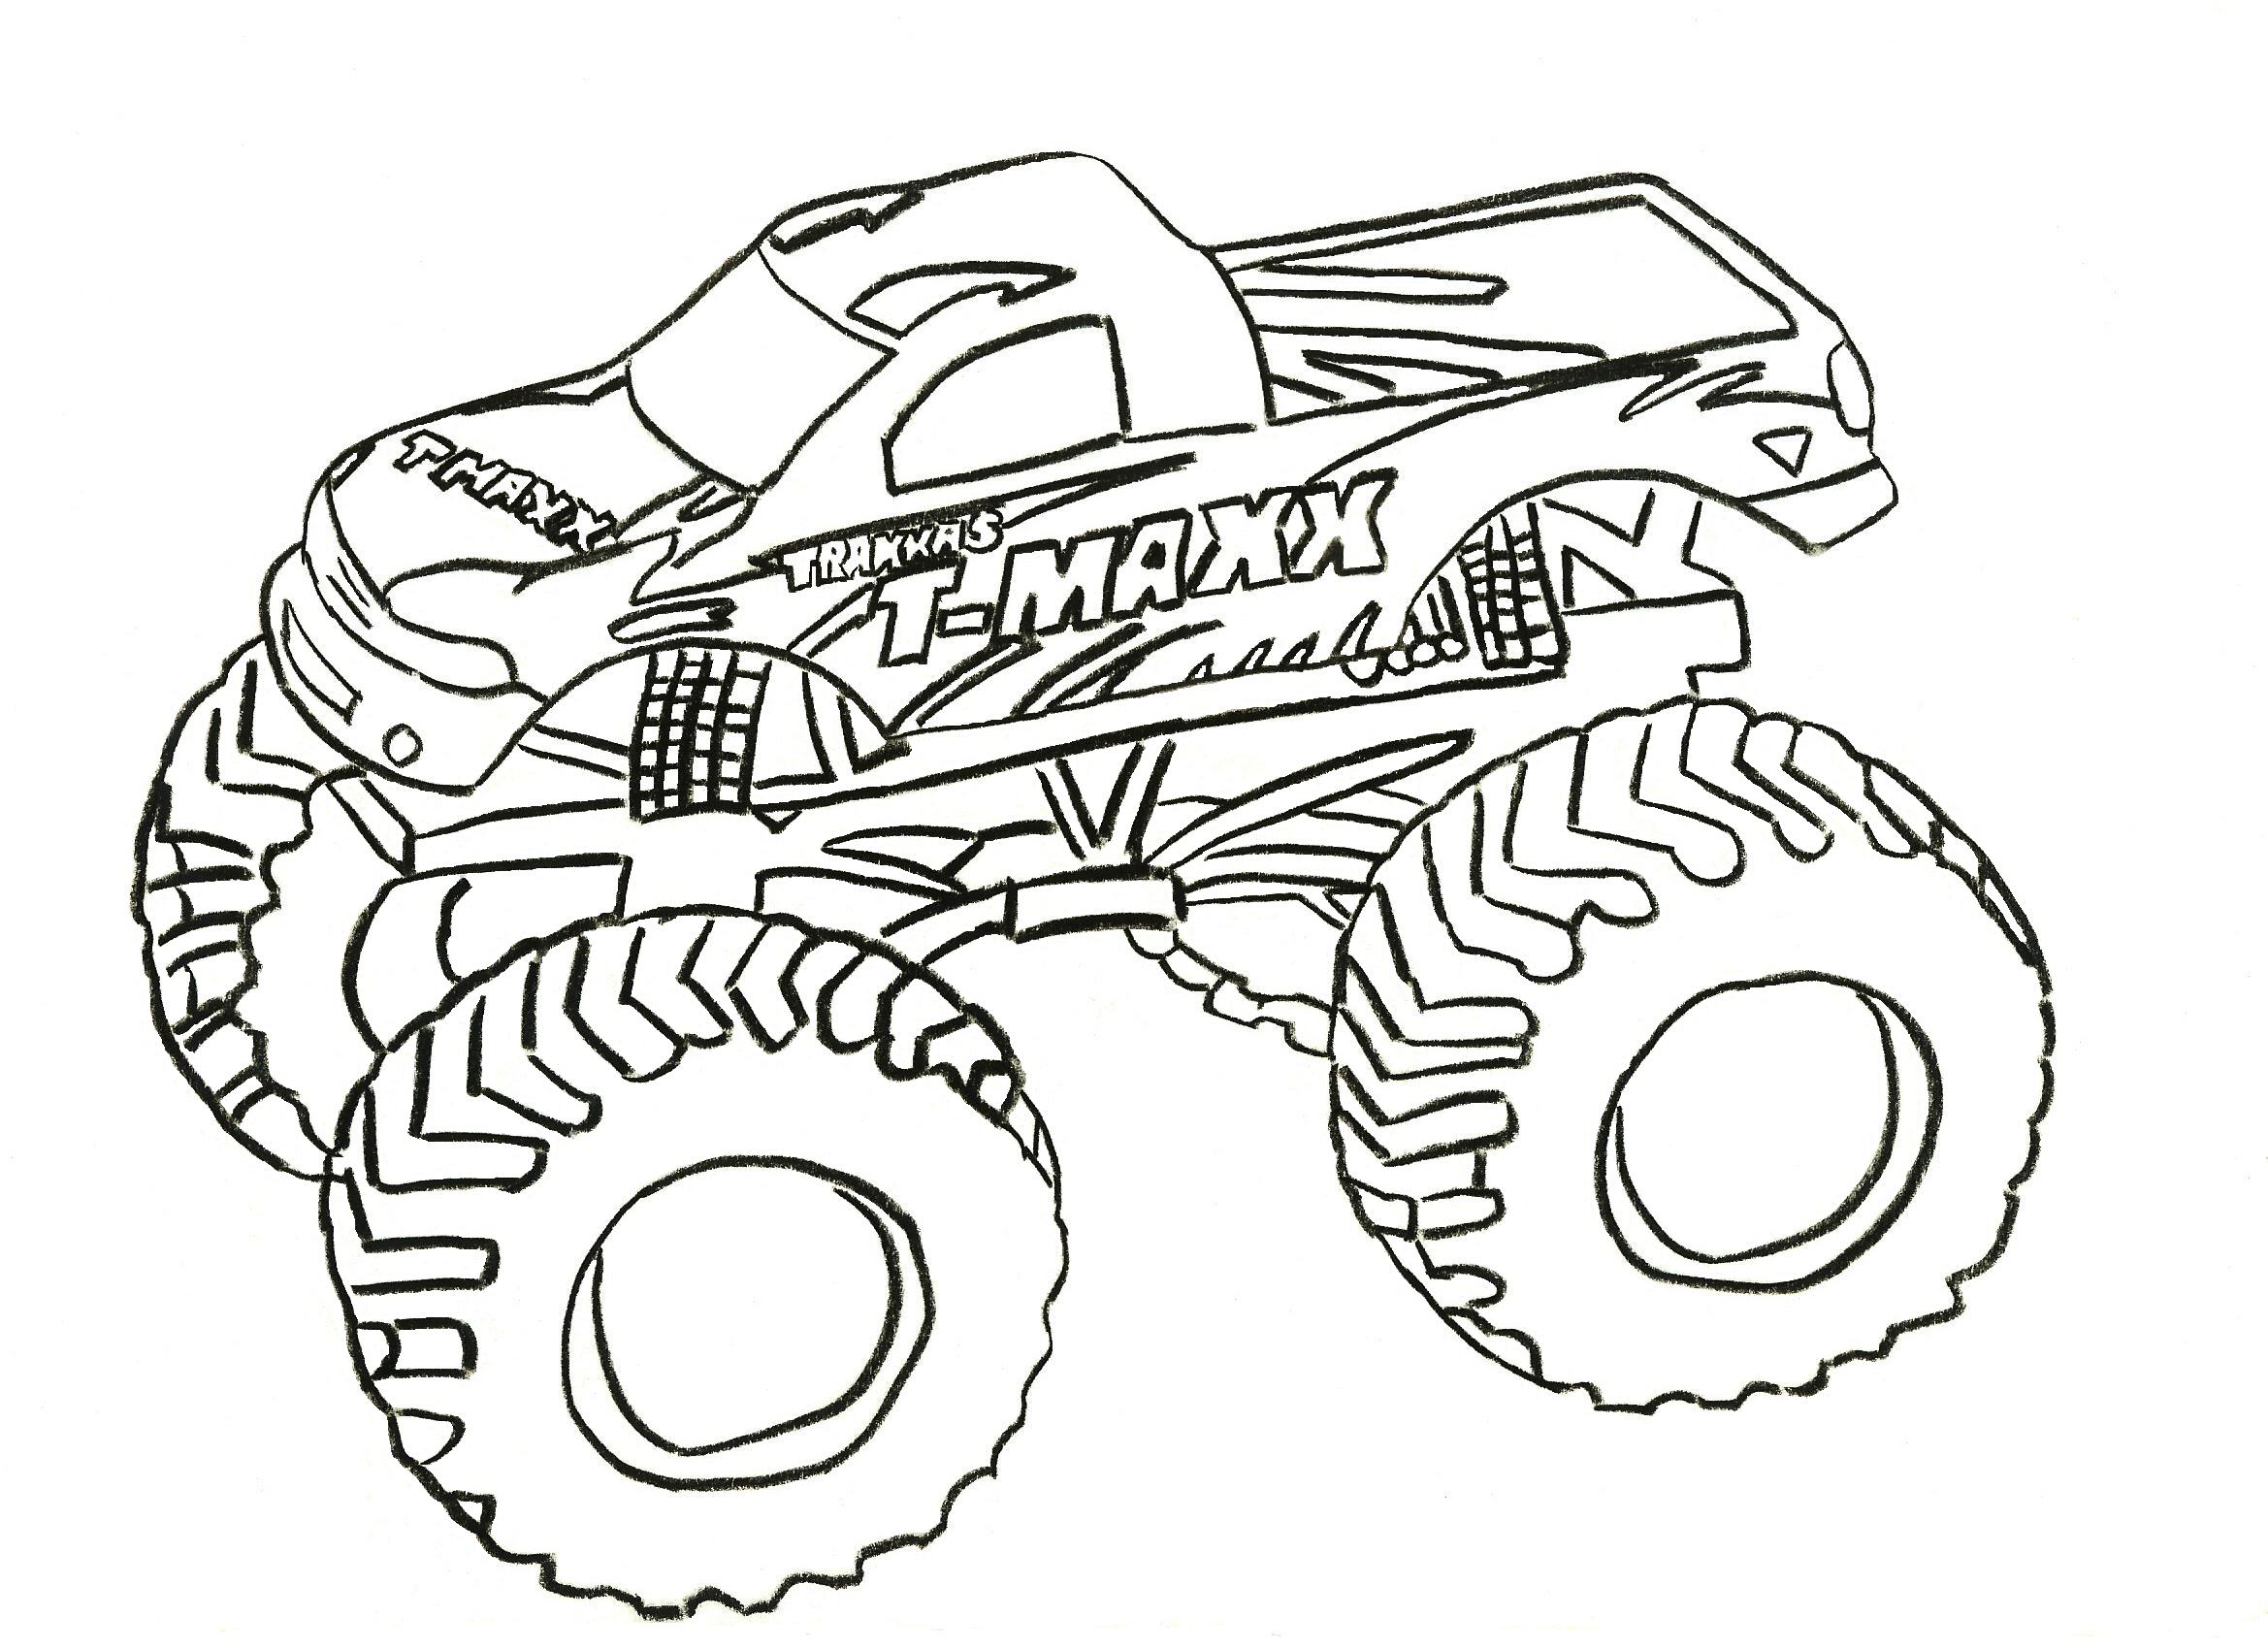 Monster Truck Coloring Pages also with bulldozer monster truck coloring pages 1 on bulldozer monster truck coloring pages besides bulldozer monster truck coloring pages 2 on bulldozer monster truck coloring pages moreover bulldozer monster truck coloring pages 3 on bulldozer monster truck coloring pages moreover bulldozer monster truck coloring pages 4 on bulldozer monster truck coloring pages